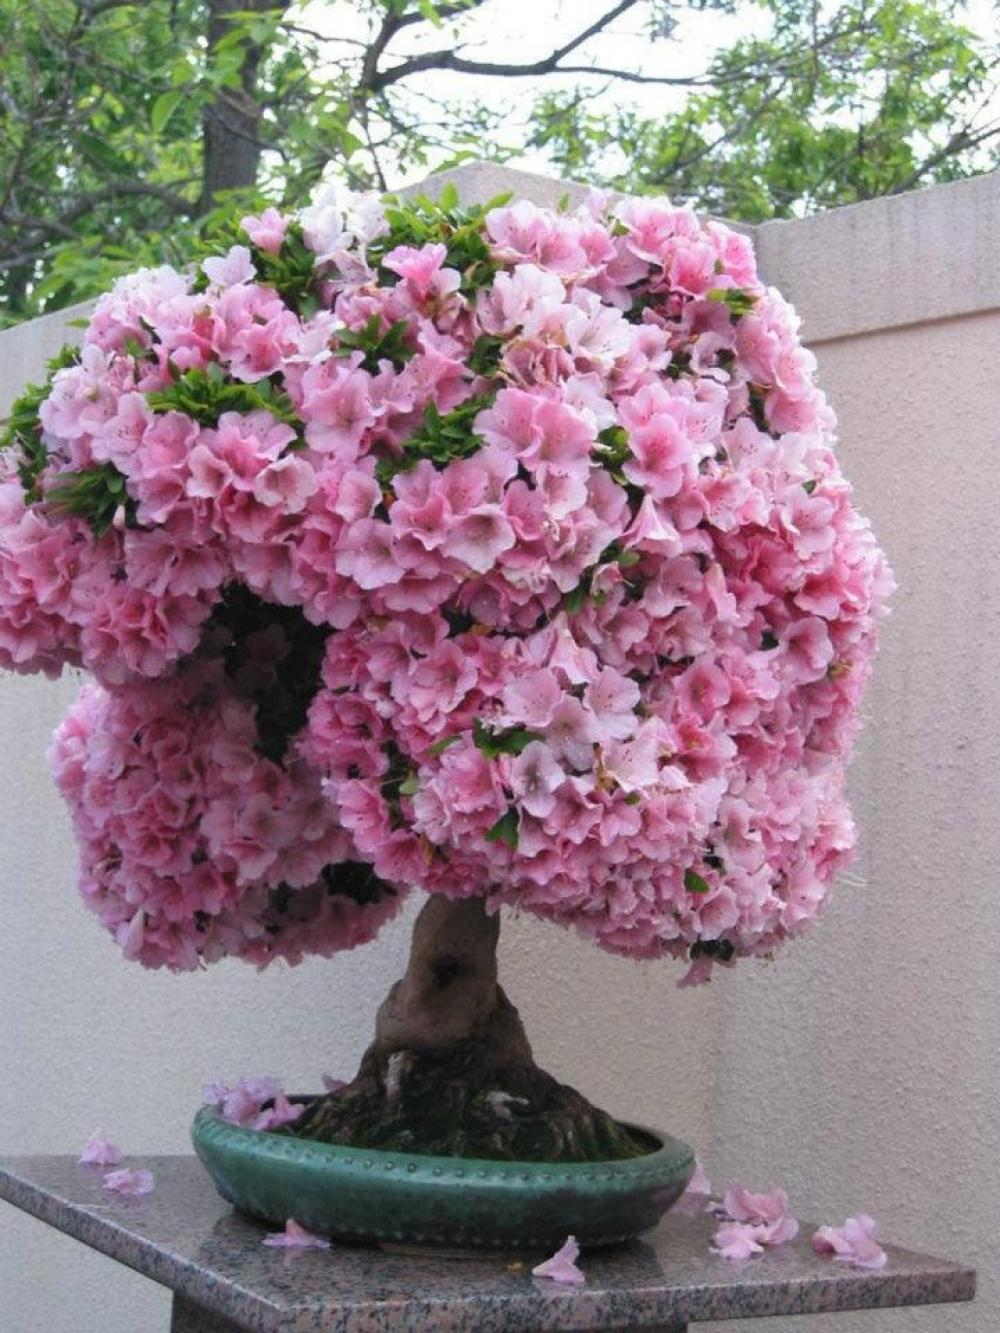 54 Unique And Attractive Bonsai Tree Design Ideas Beautiful Pink Bonsai Flower Collection For Interiors Decoration Homesthetics Inspiring Ideas For Your Home